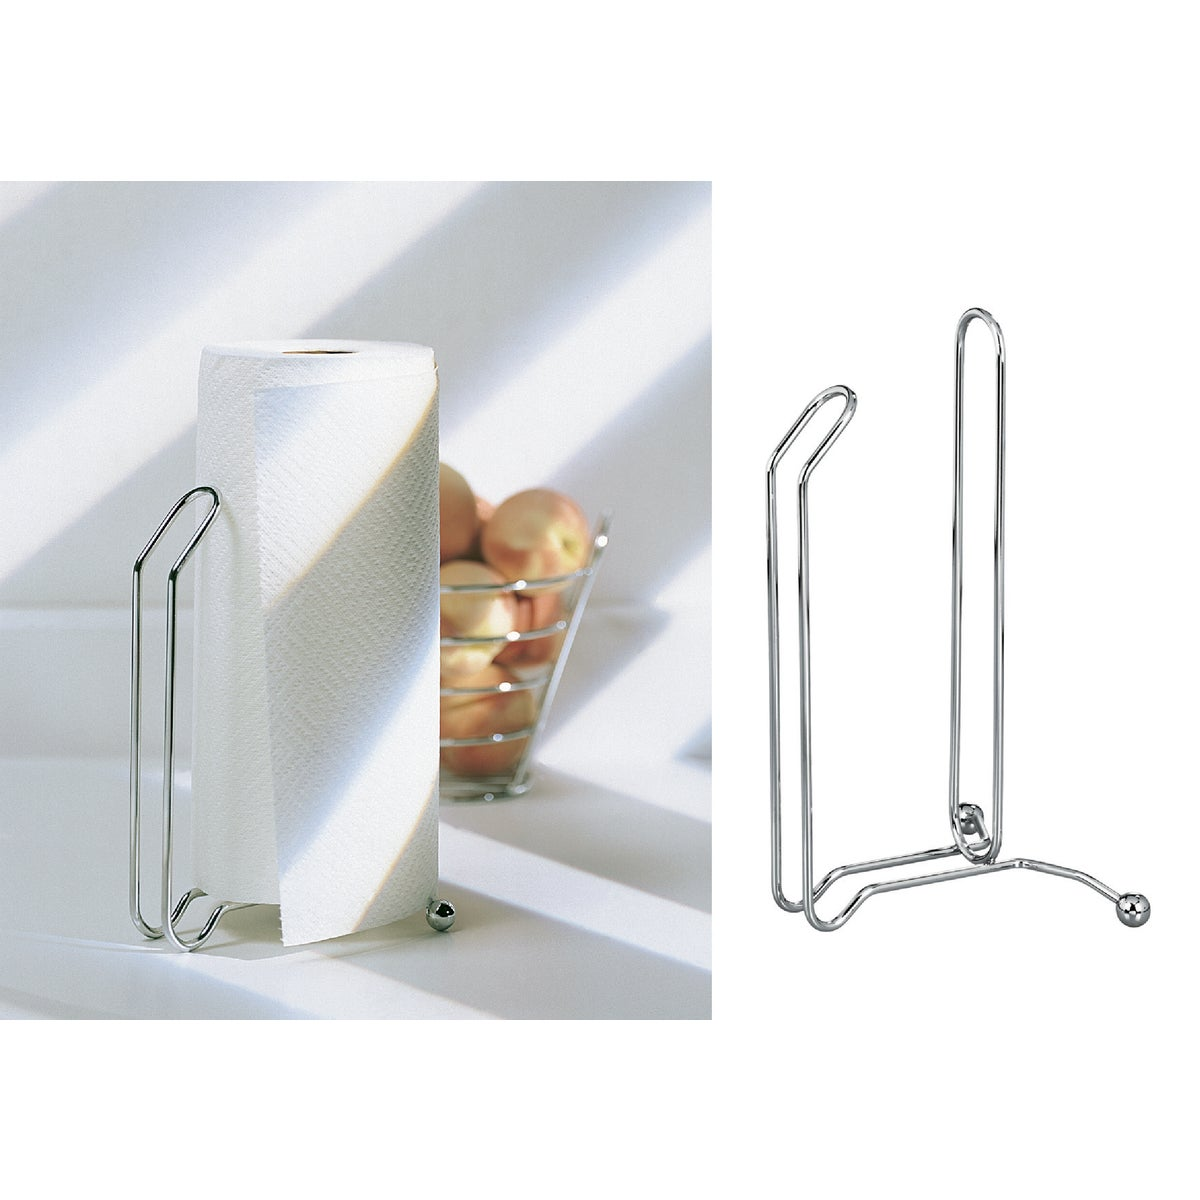 CHR ST PAPR TOWEL HOLDER - 35402 by Interdesign Inc